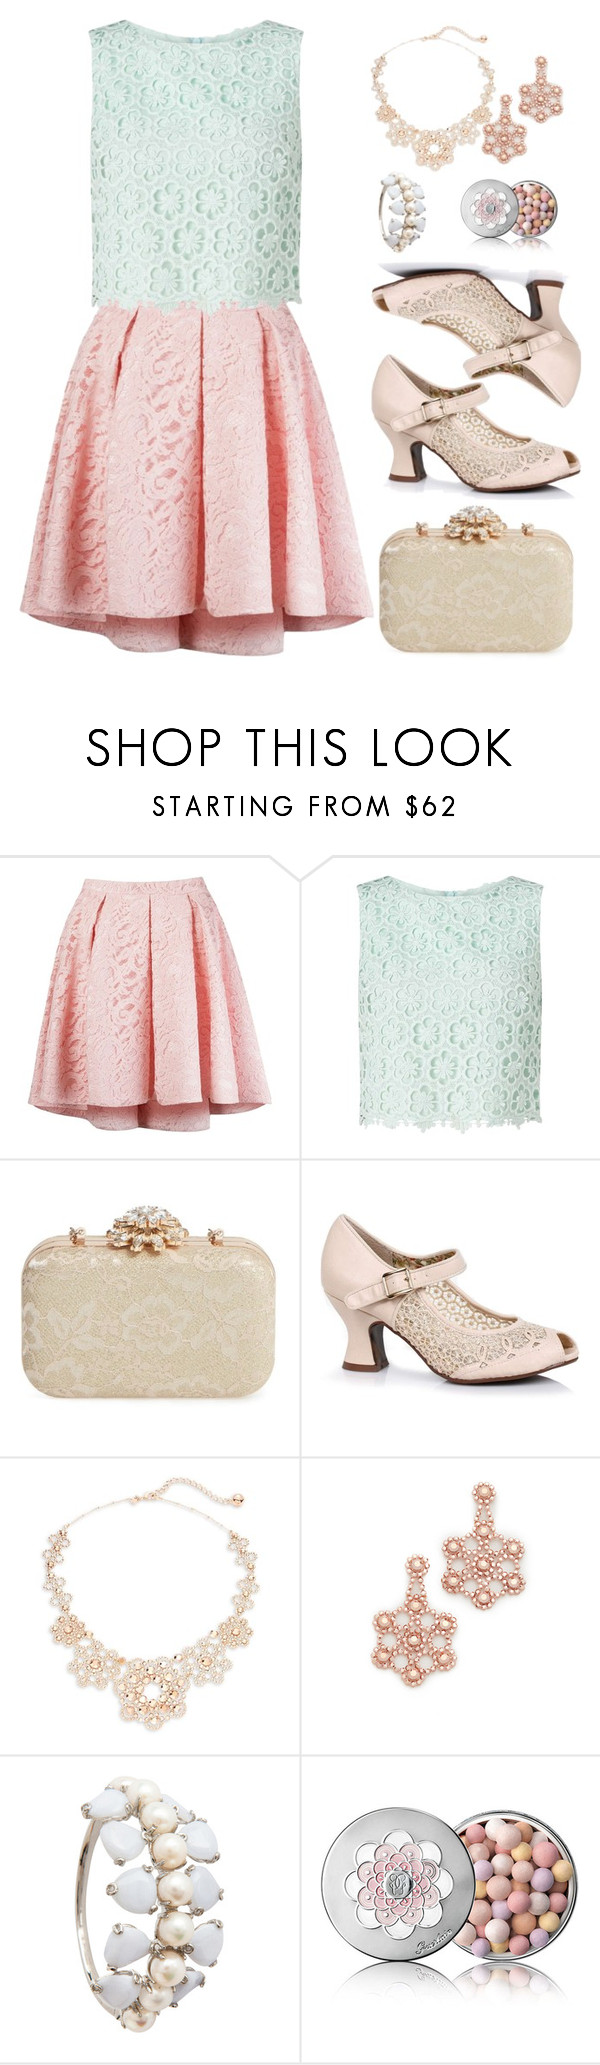 """Pastel Lace"" by majezy ❤ liked on Polyvore featuring Martha Medeiros, Miss Selfridge, Glint, Kate Spade and Guerlain"